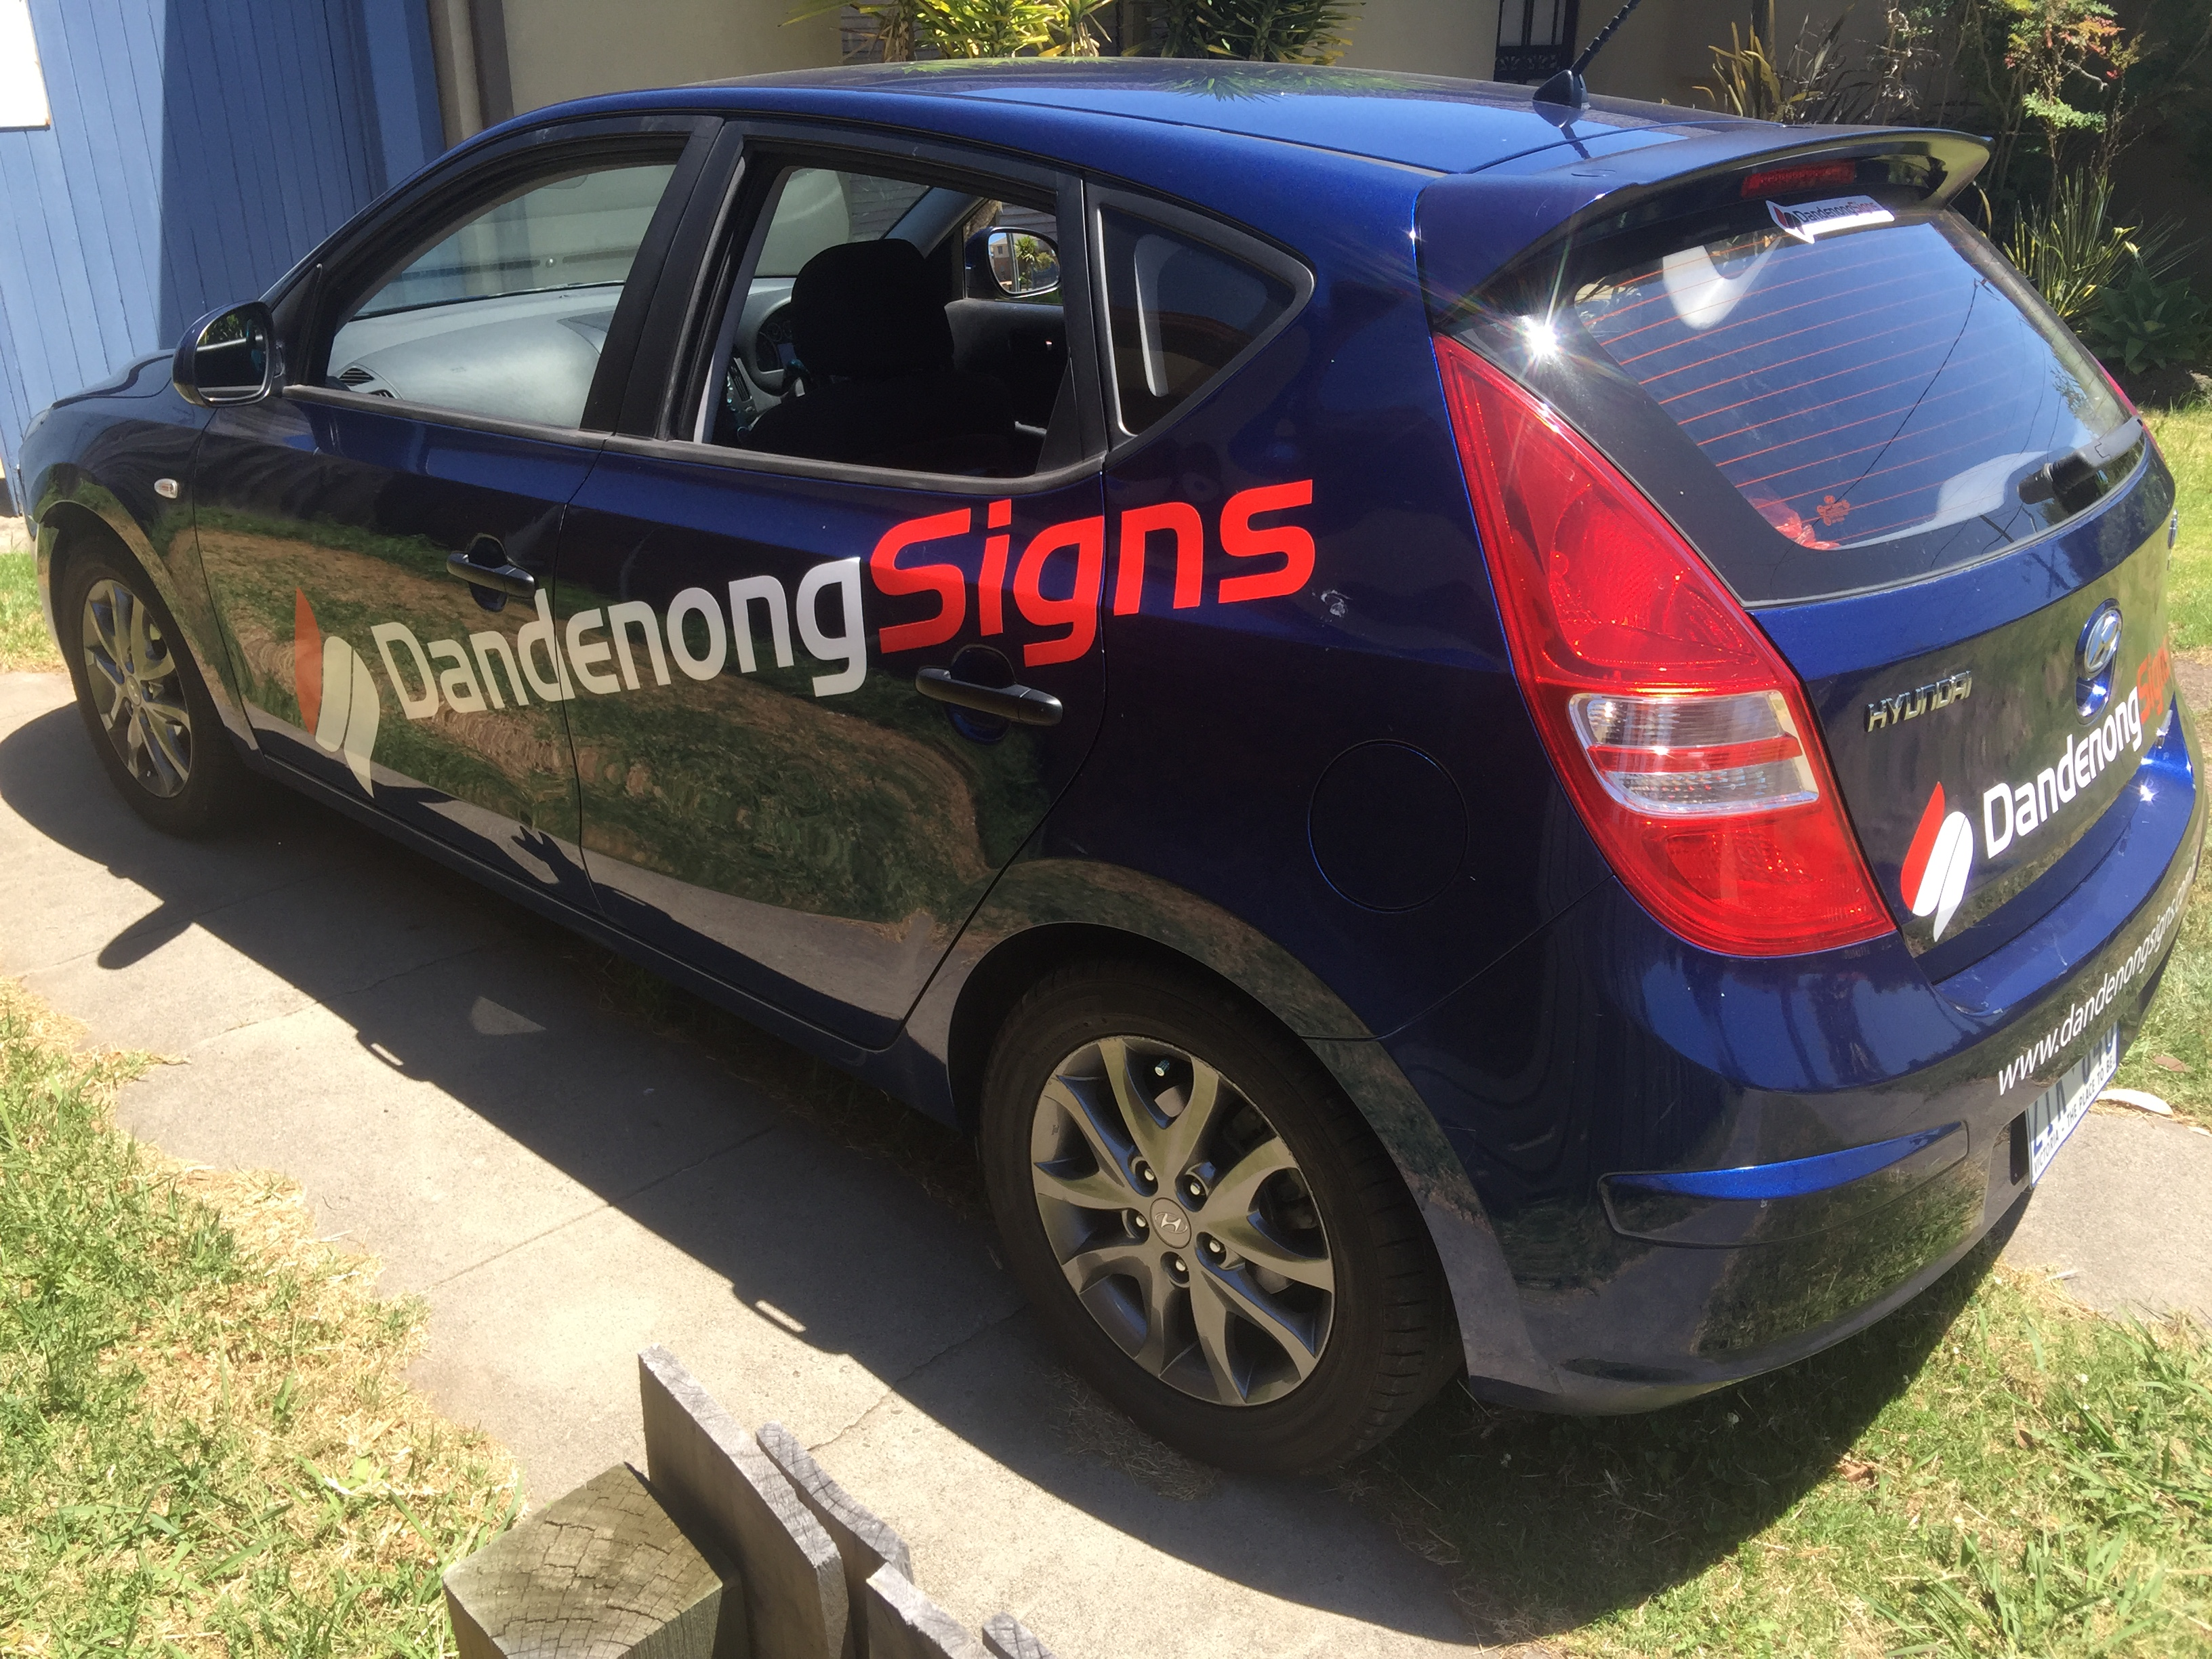 signs-dandenong-top-1-google-bing-home-business-option-price-reduced-3